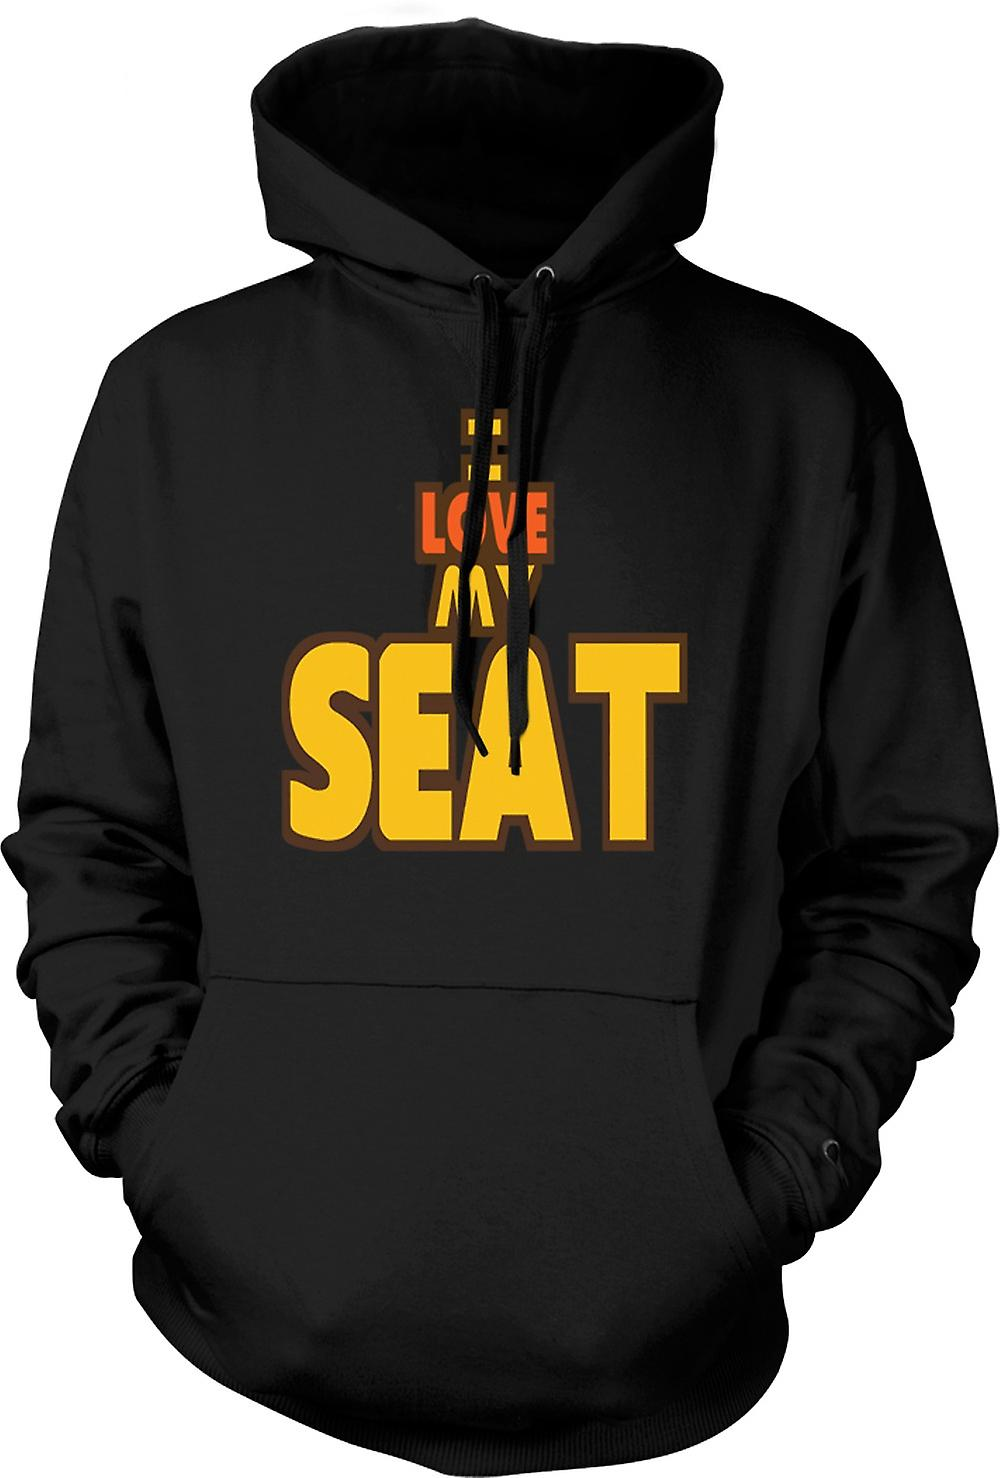 Kids Hoodie - I Love My Seat - Car Enthusiast